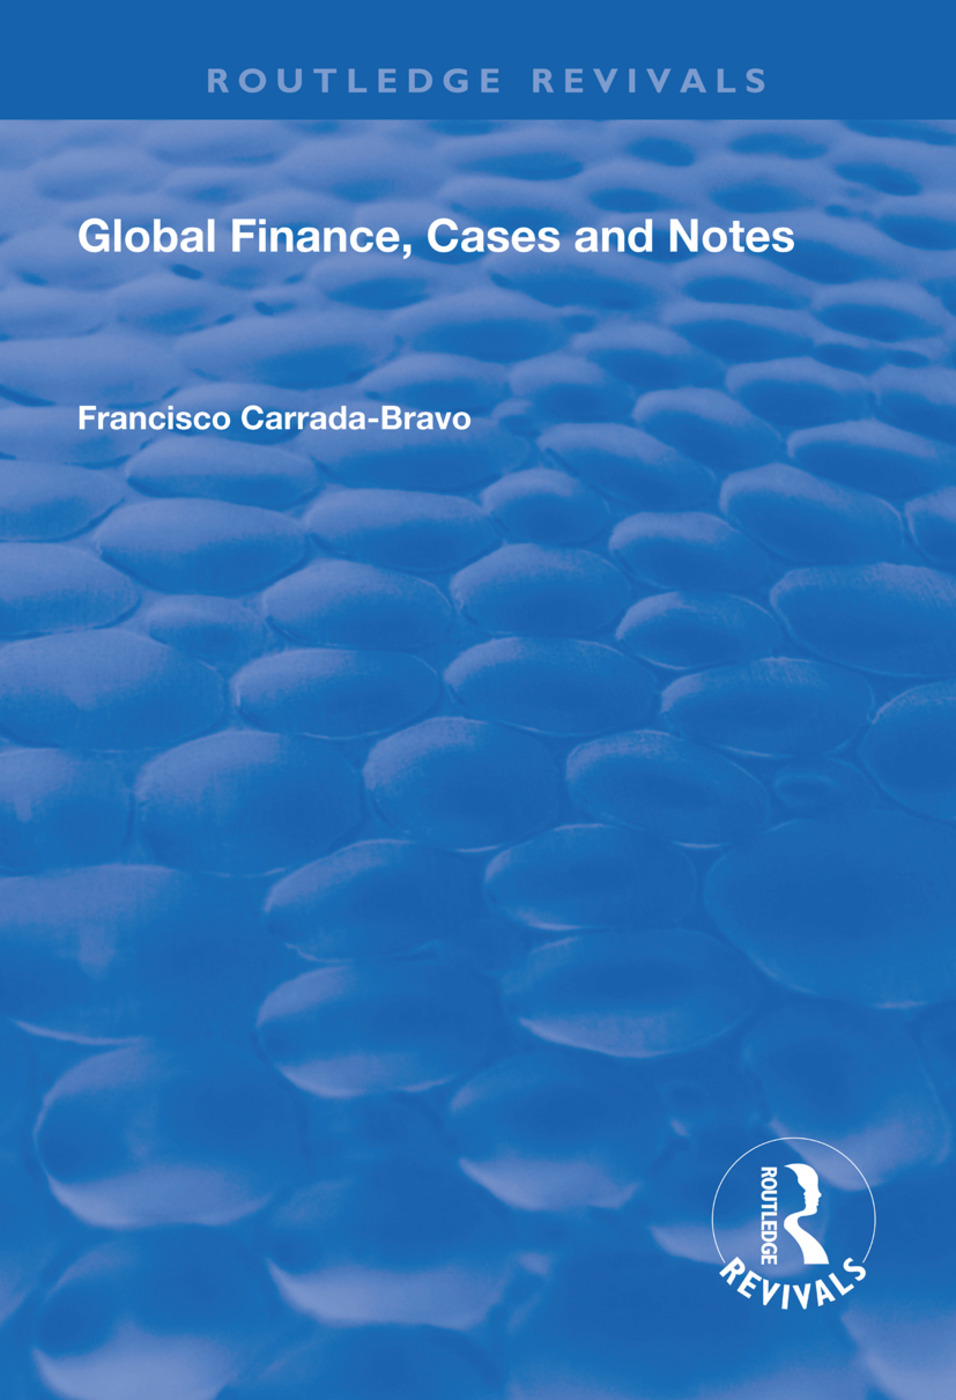 Global Finance, Cases and Notes